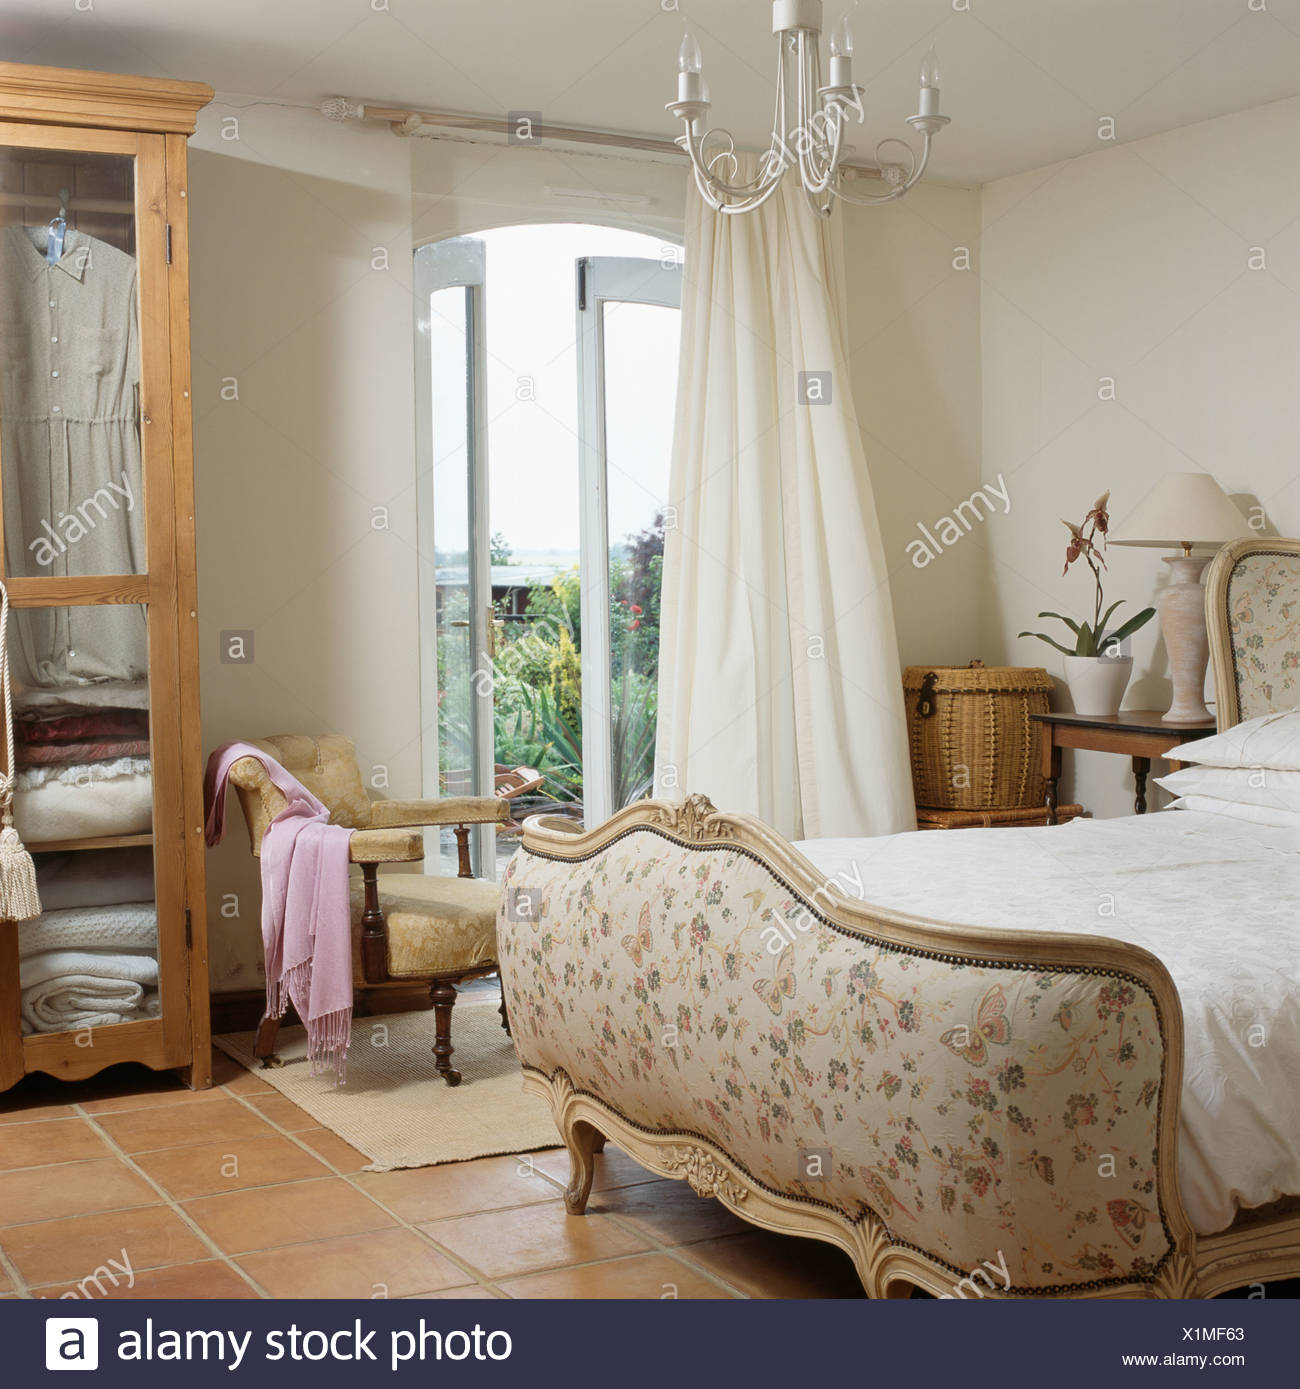 Upholstered French Bed In Cream Country Bedroom With Cream Curtains At  French Windows With View Of The Garden